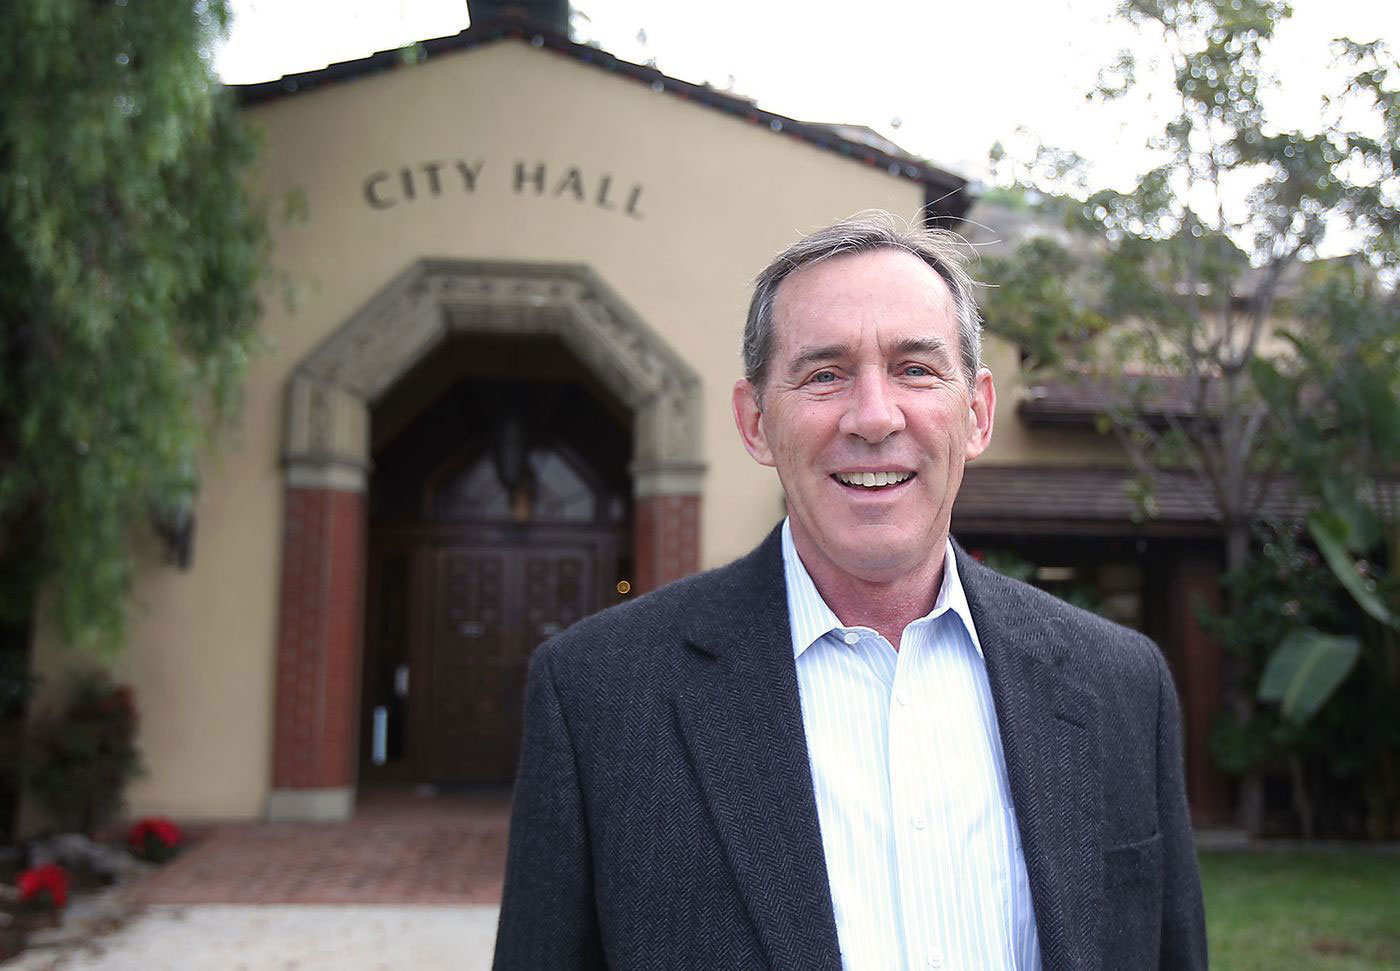 Mayor Whalen City Hall